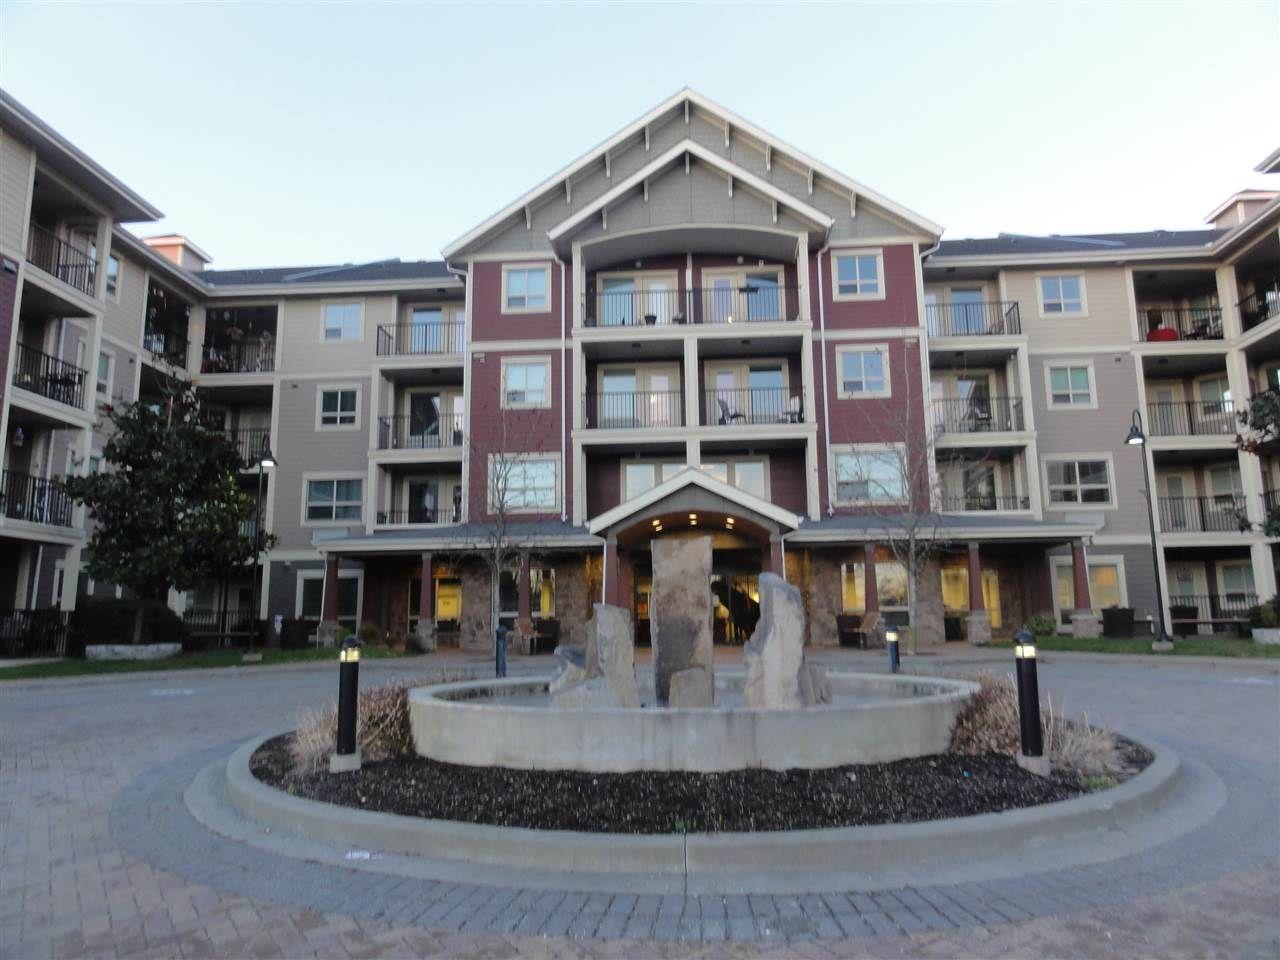 """Main Photo: 431 22323 48 Avenue in Langley: Murrayville Condo for sale in """"AVALON GARDENS"""" : MLS®# R2134591"""